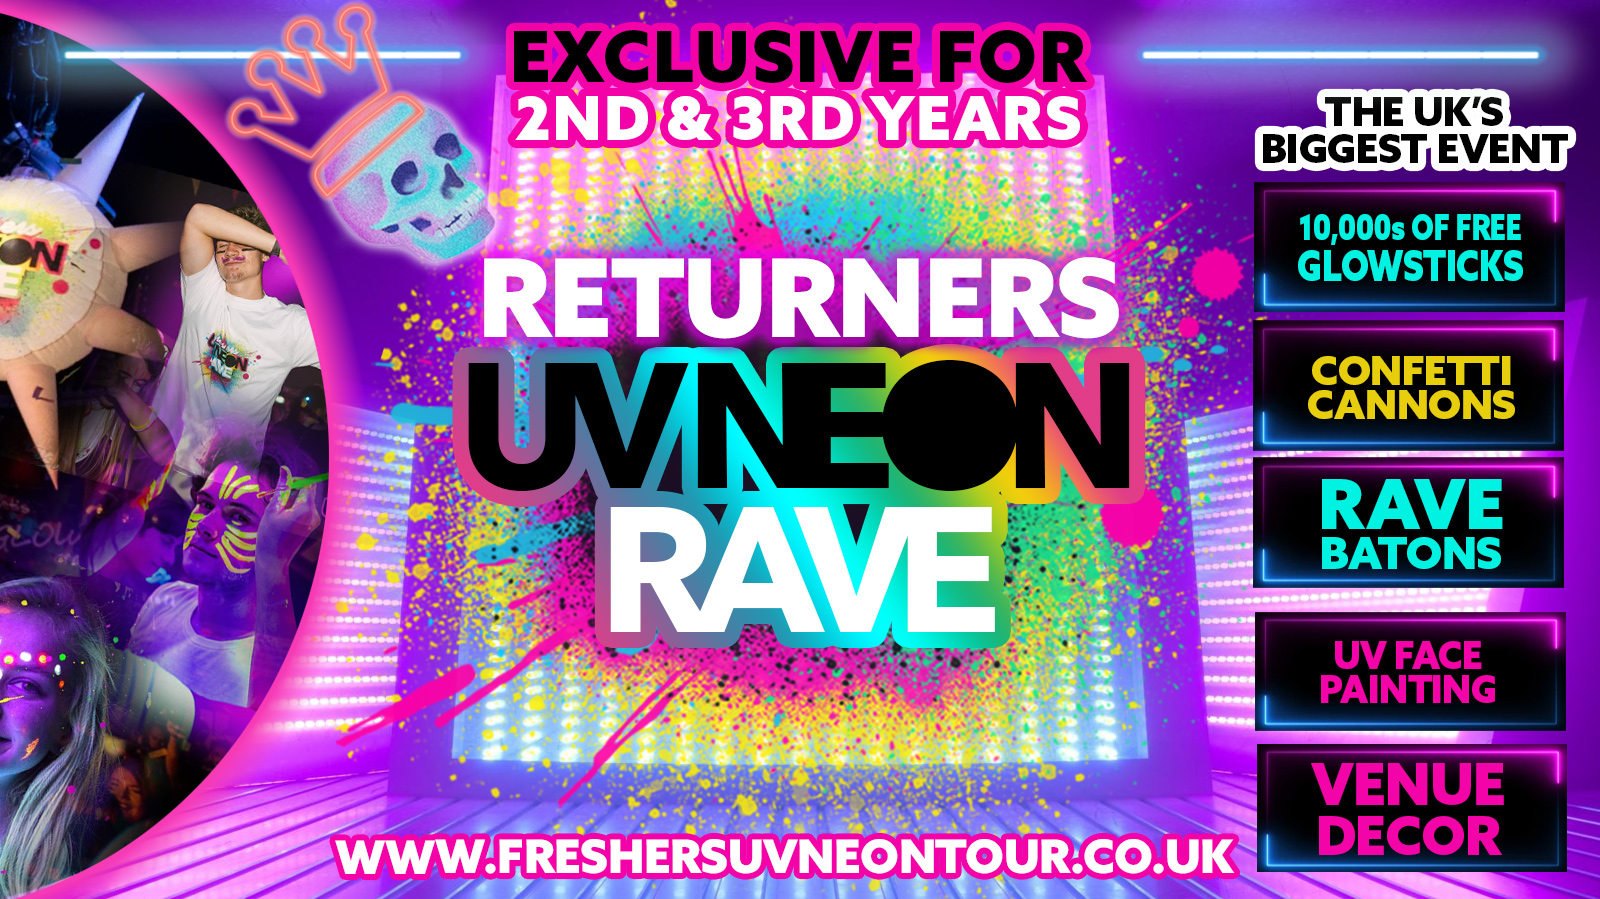 Portsmouth Returners UV Neon Rave   Exclusive for 2nd & 3rd Years